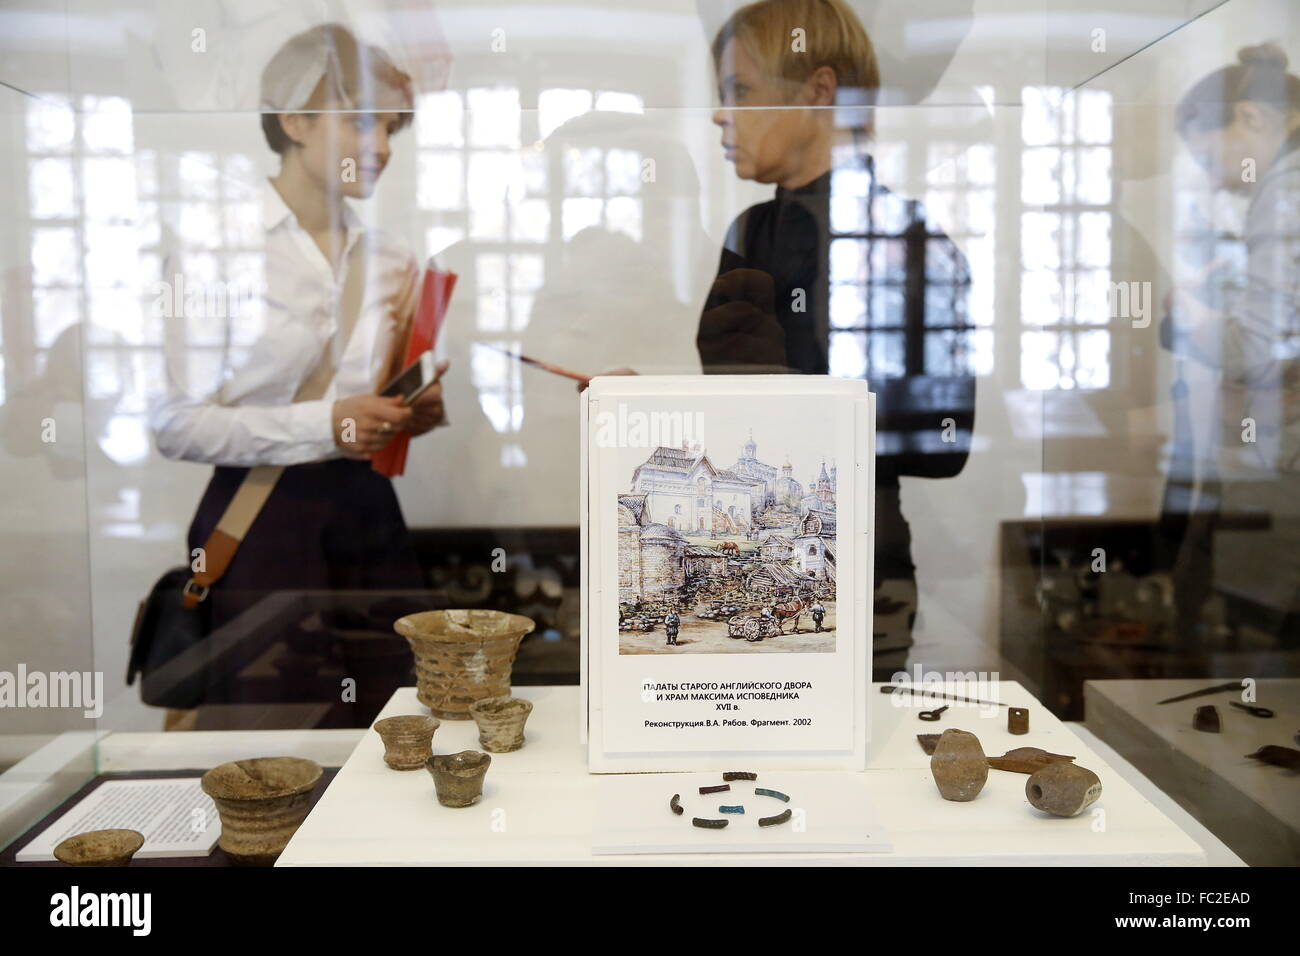 Moscow, Russia. 20th Jan, 2016. Visitors view a display of artefacts and a picture showing an artist's impression - Stock Image